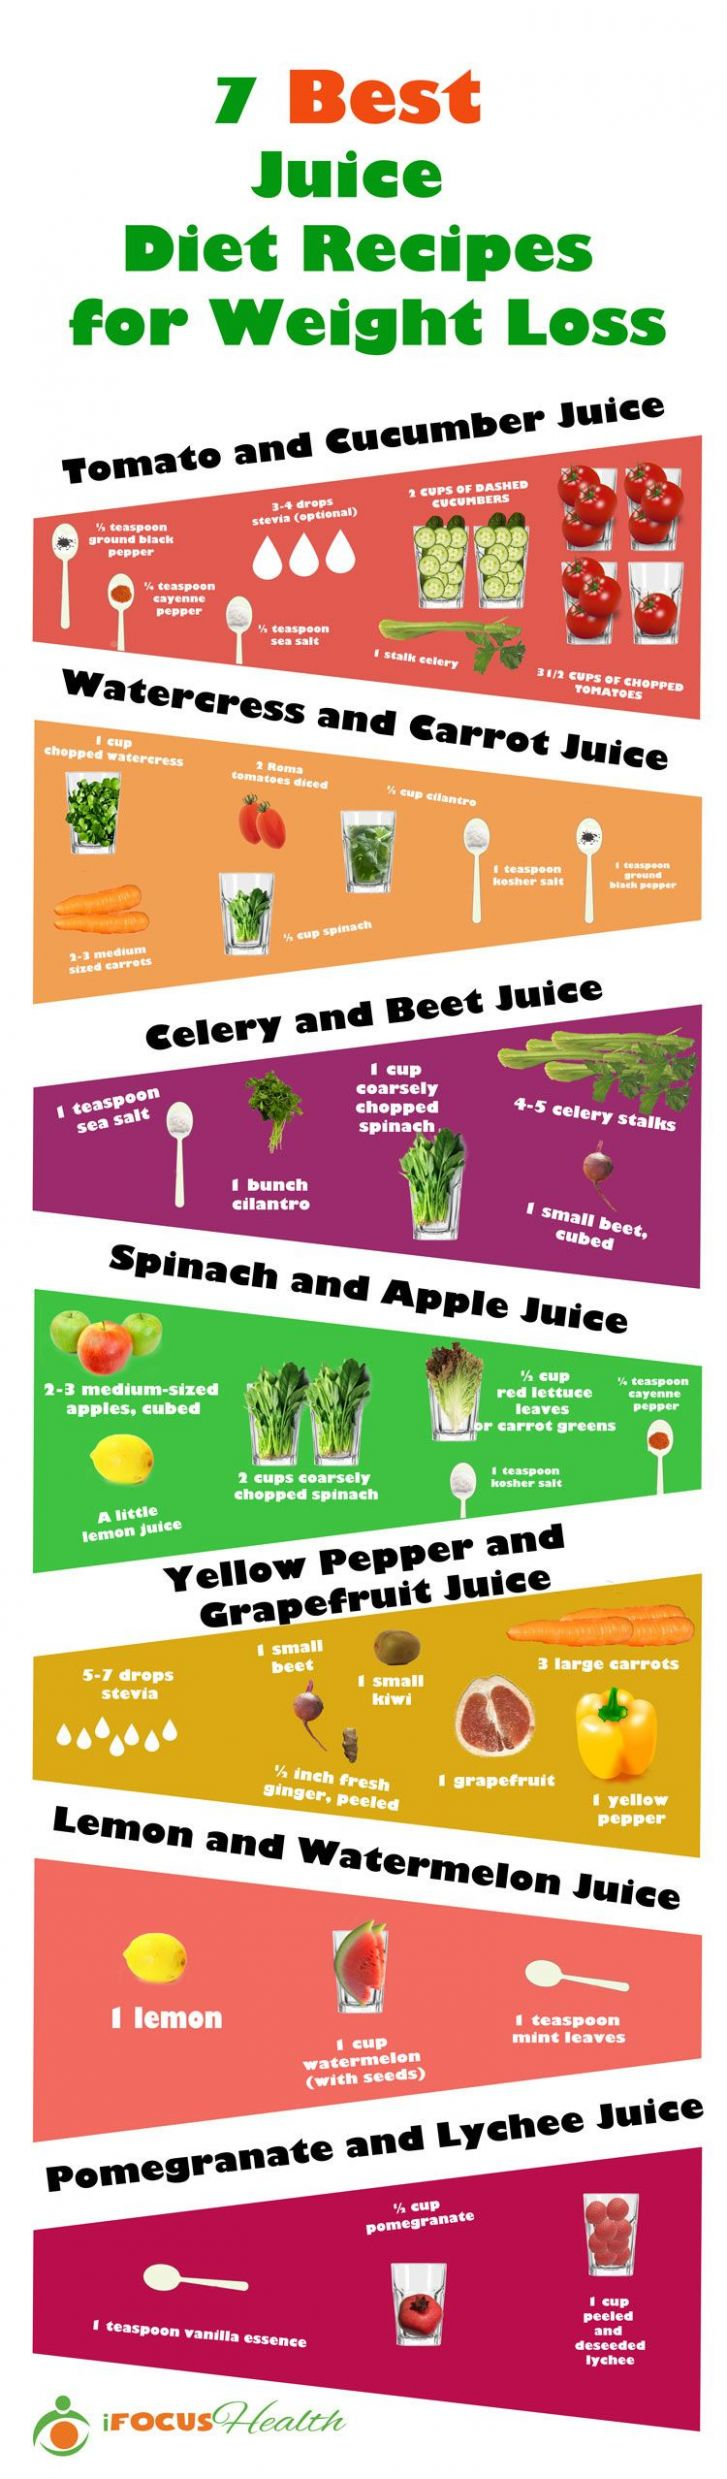 12 Simple Juicing Recipes for Weight Loss (Infographic) - Juice Recipes For Weight Loss Fasting